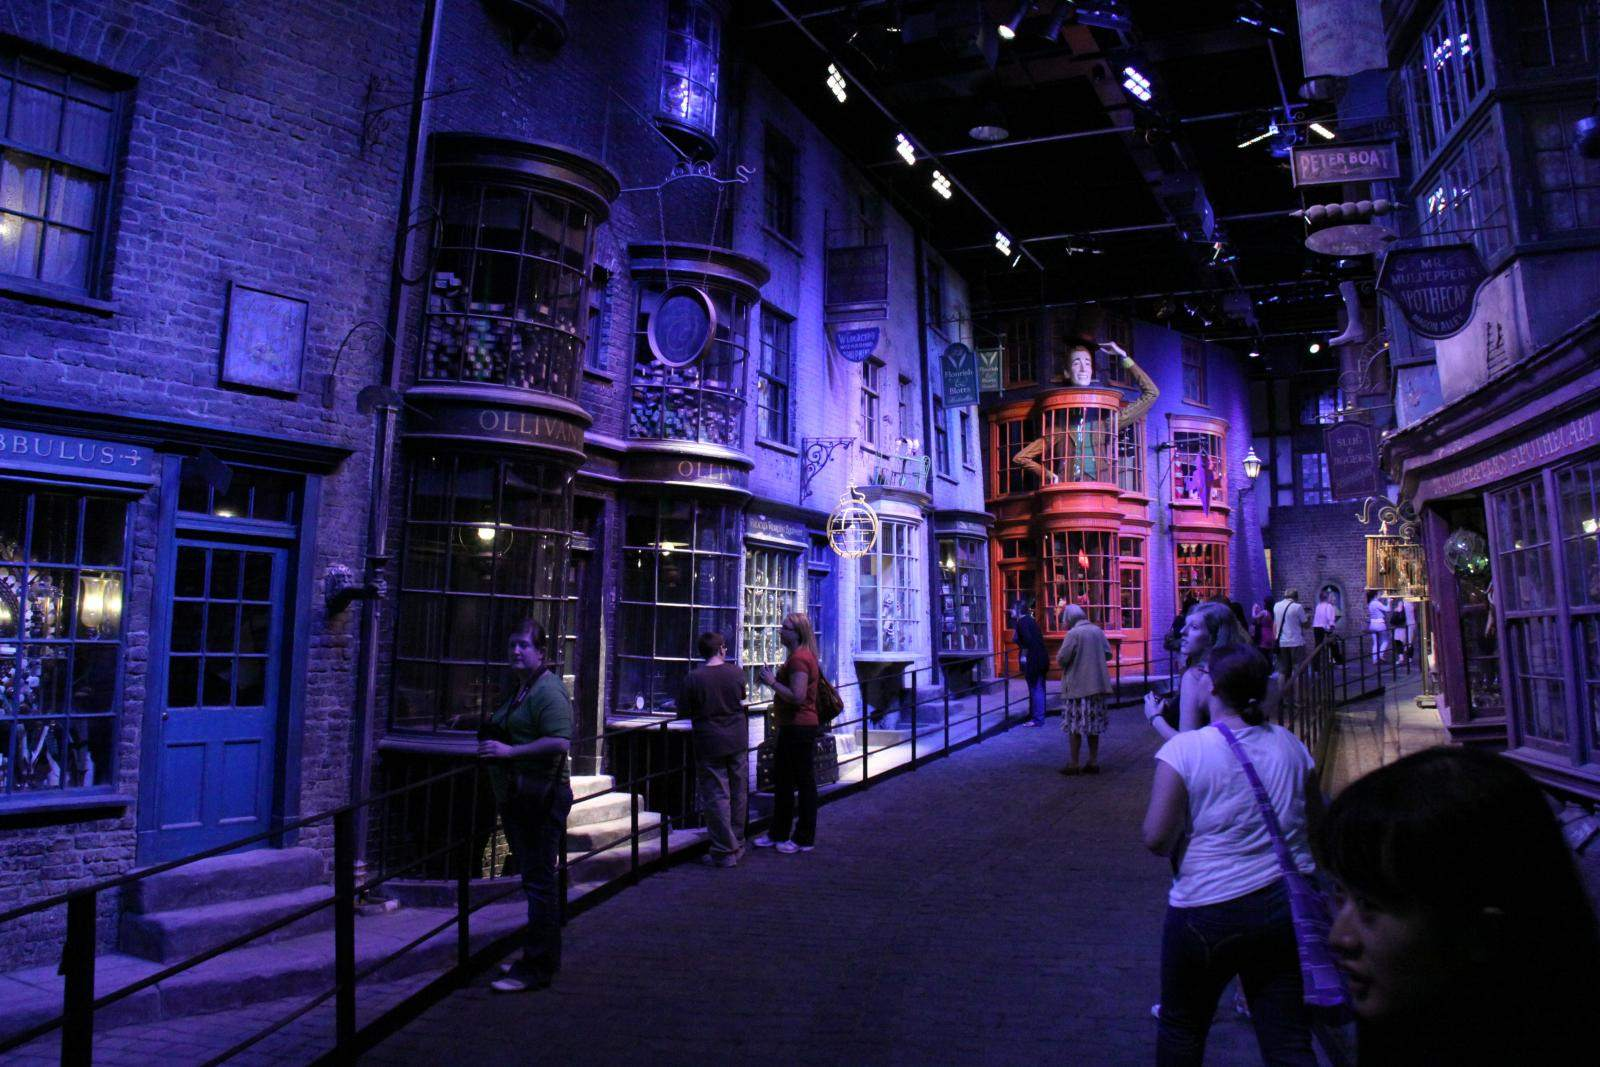 making harry potter The Making of Harry Potter, Warner Bros Studio London